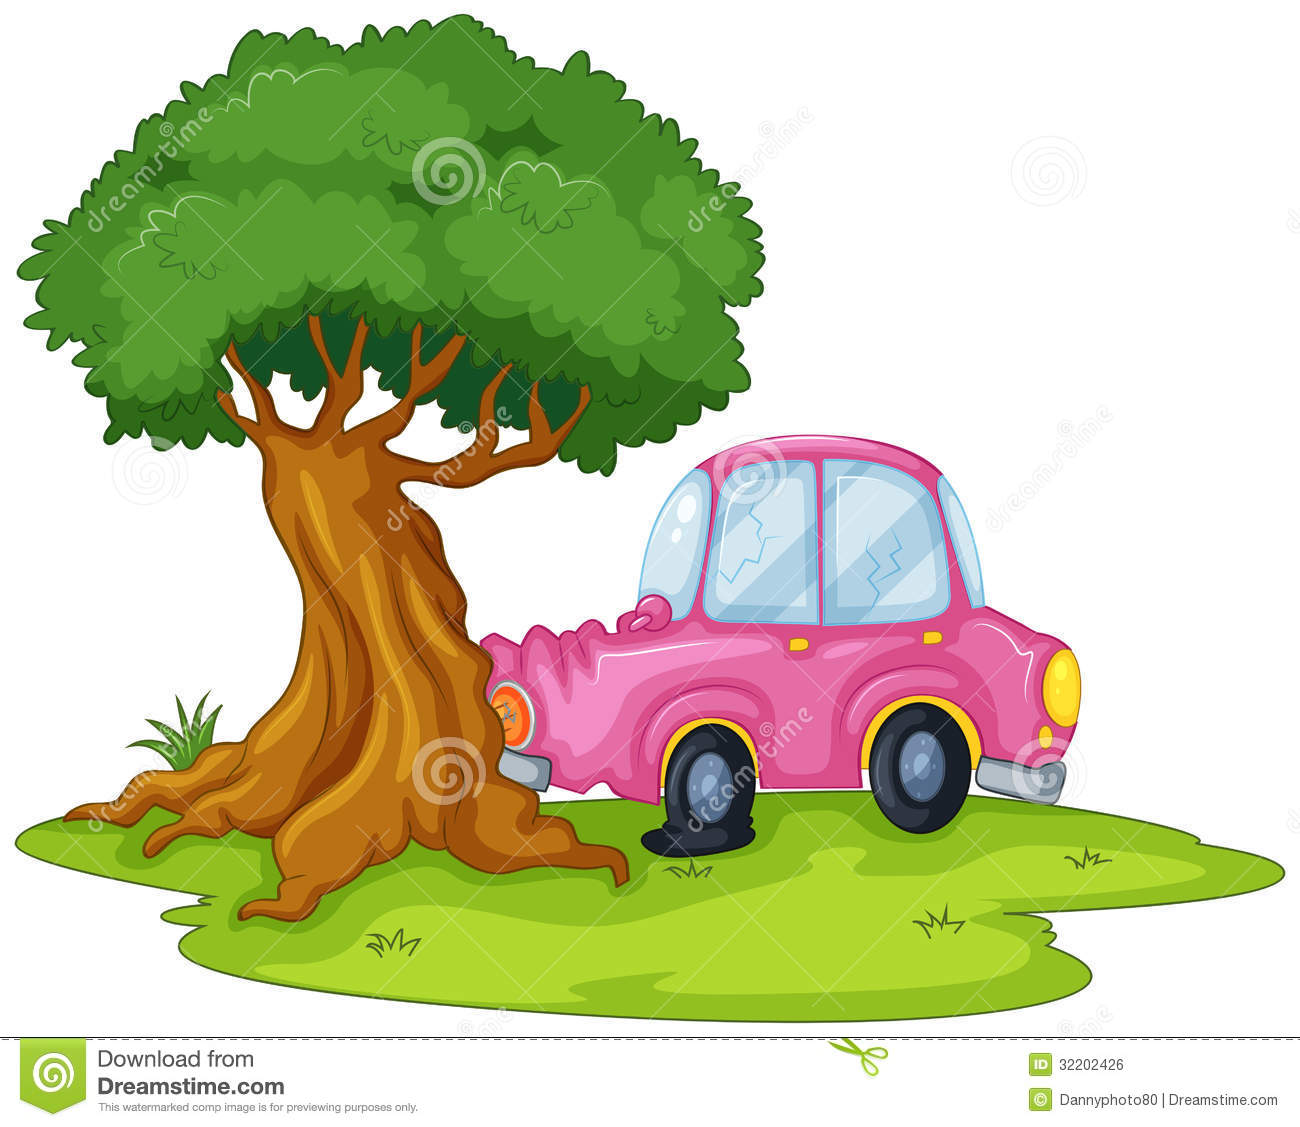 Crash clipart car collision Wreck clipart Accident clipart car